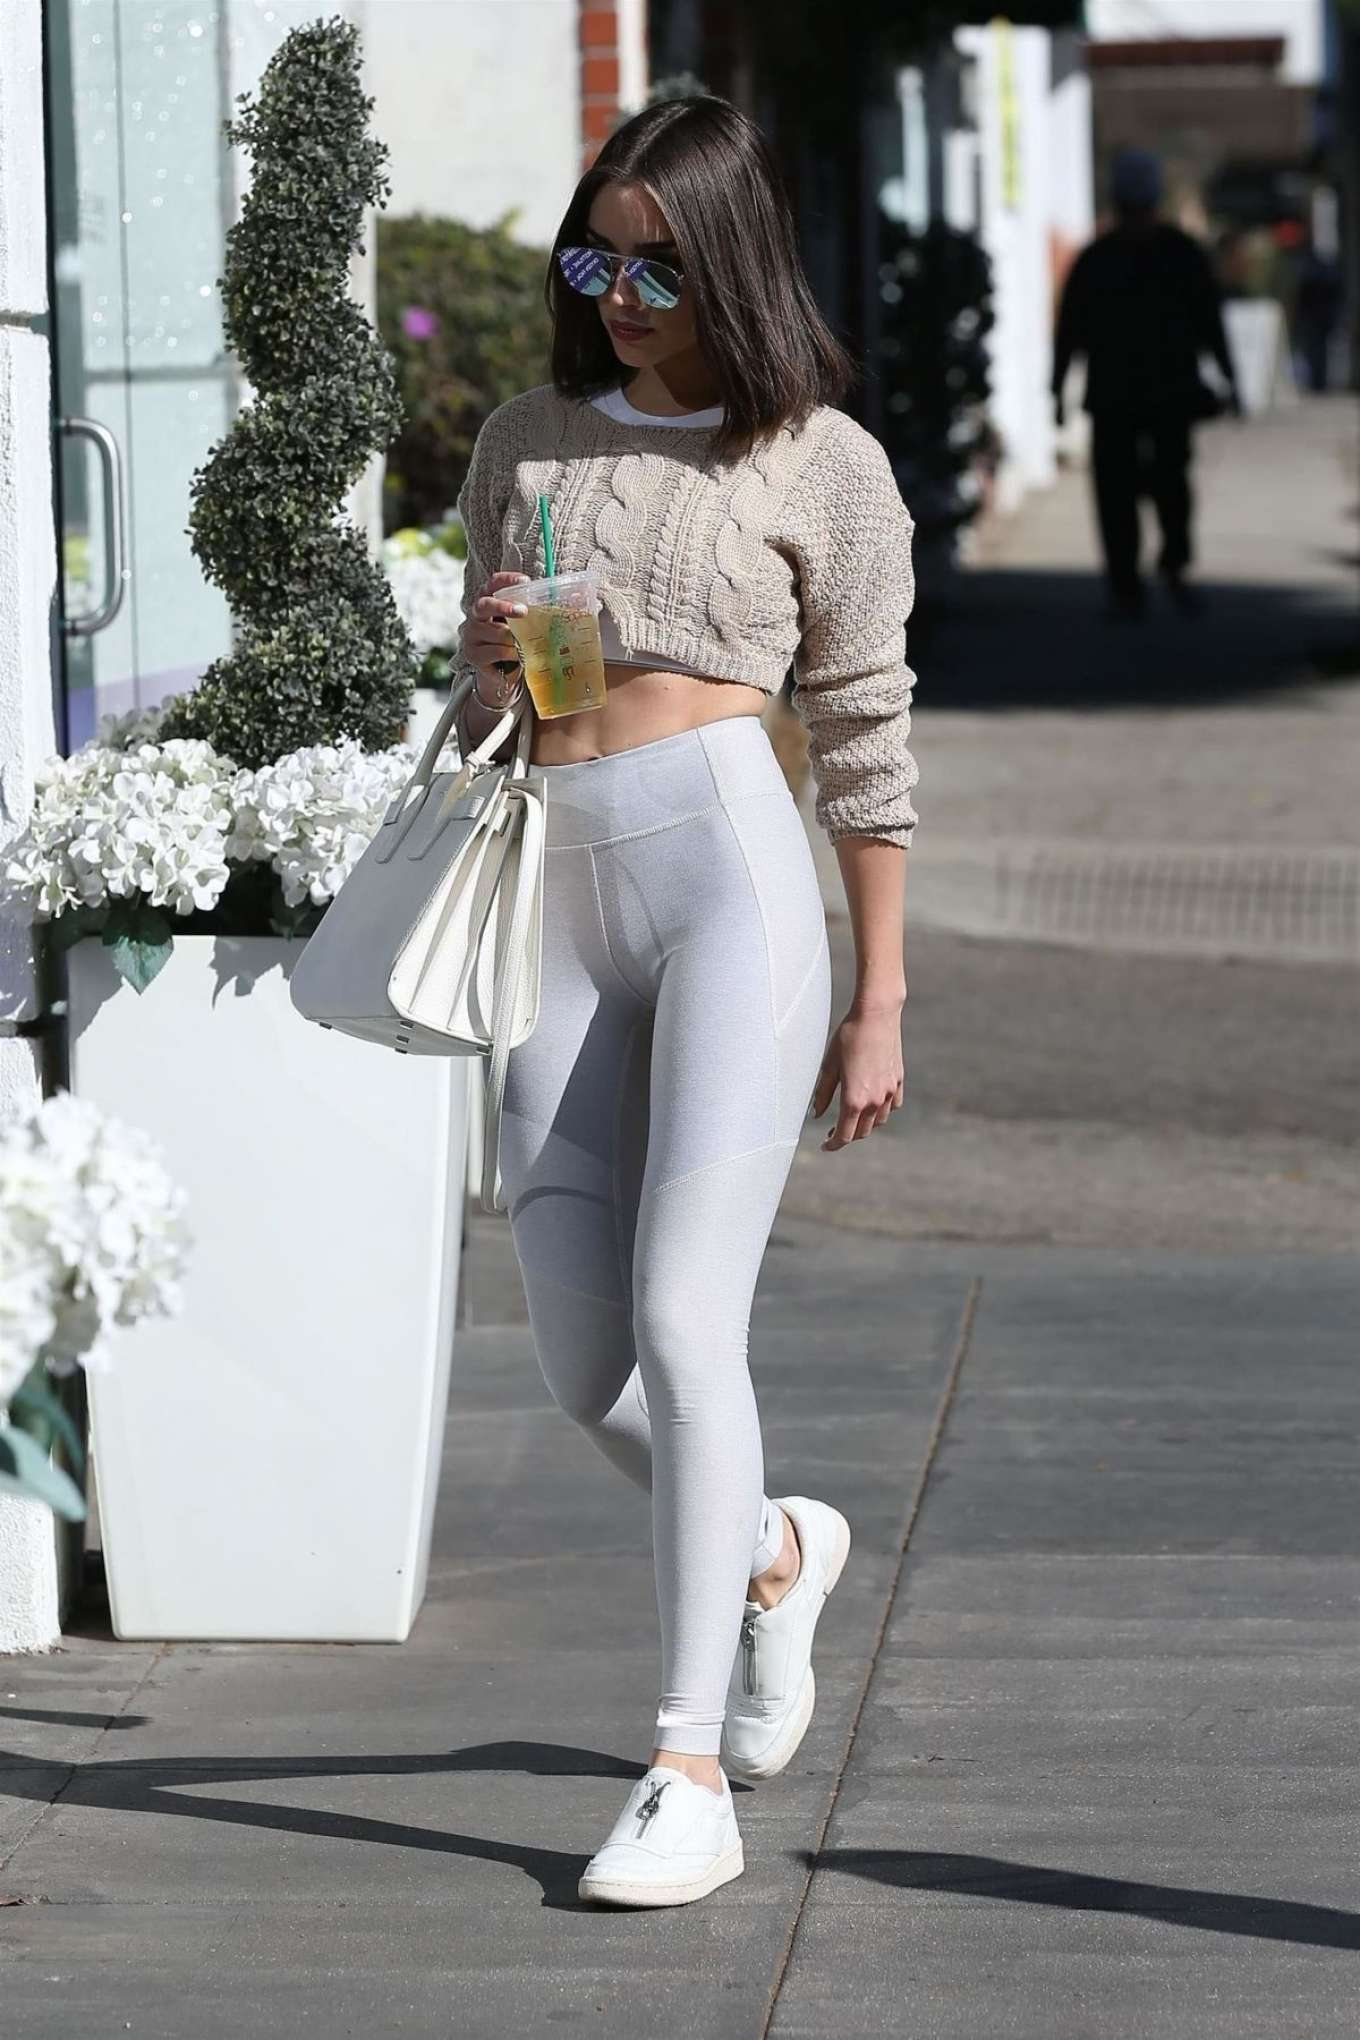 Olivia Culpo In White Tights 09 Gotceleb